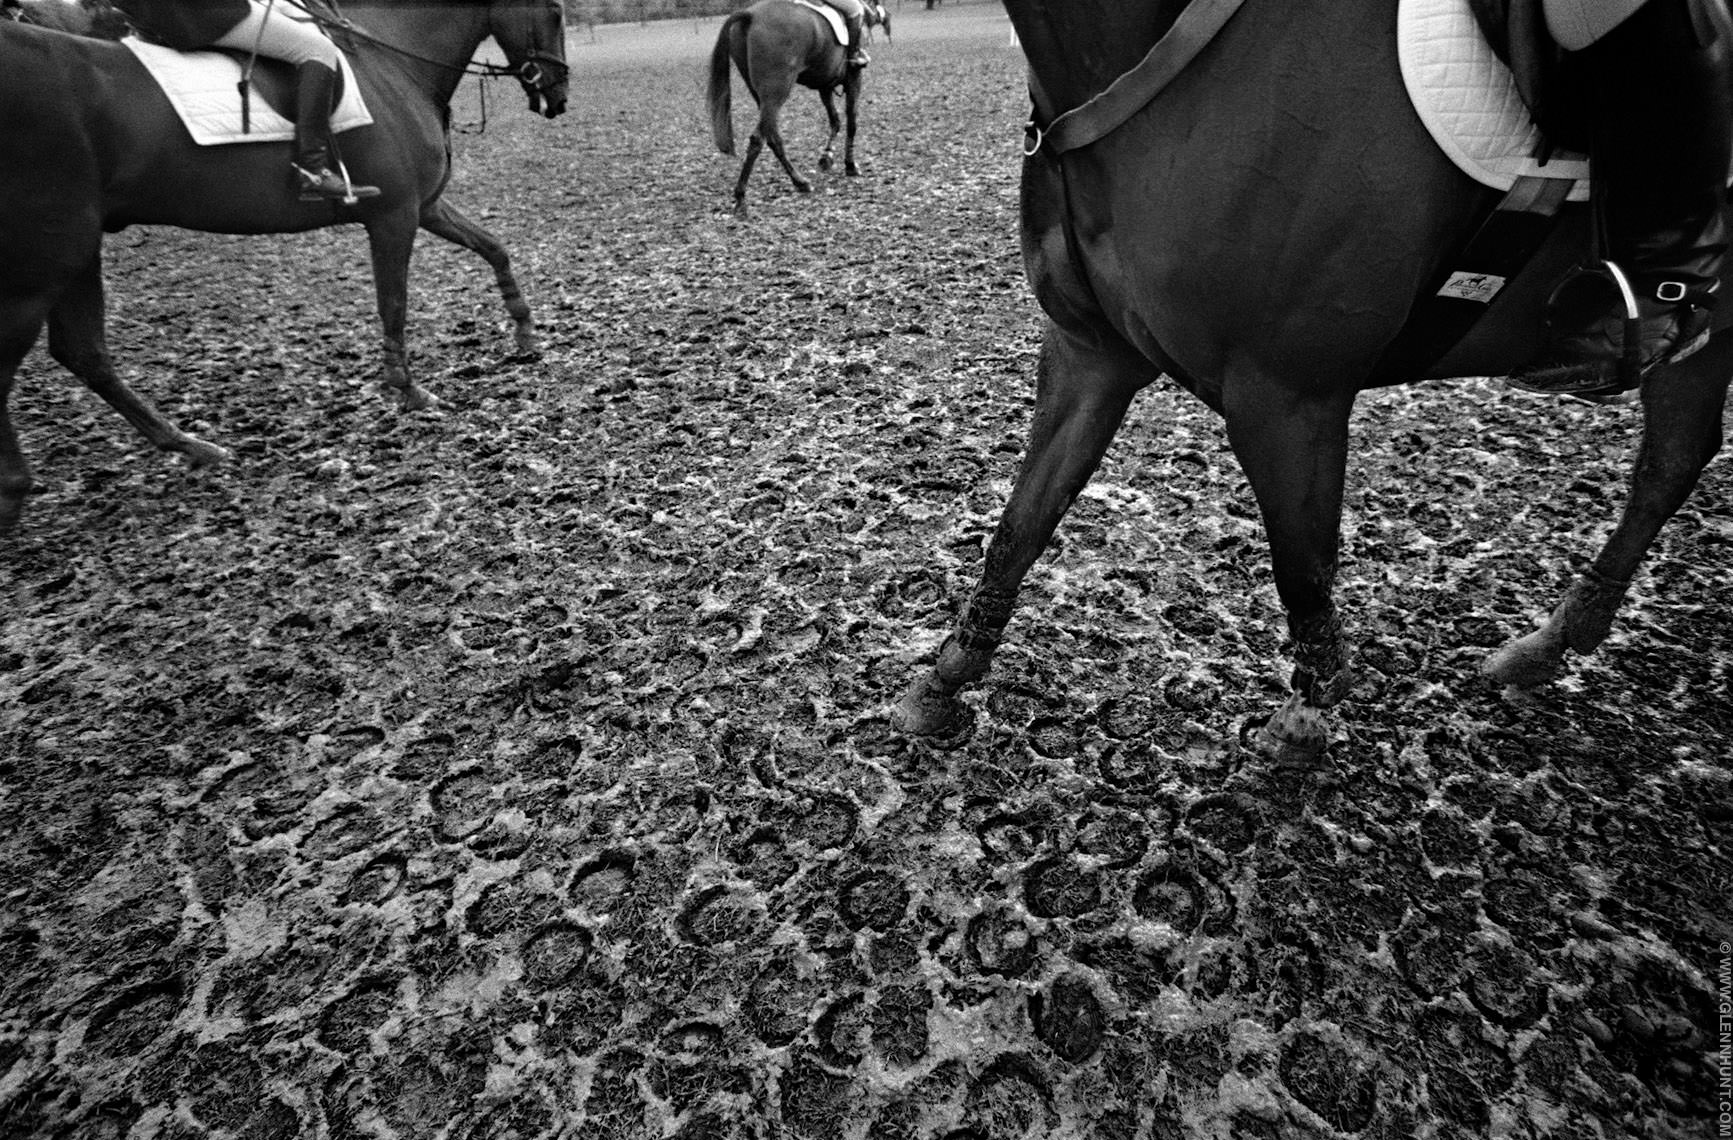 Horses at the Windsor Horse Trials, Windsor, England.